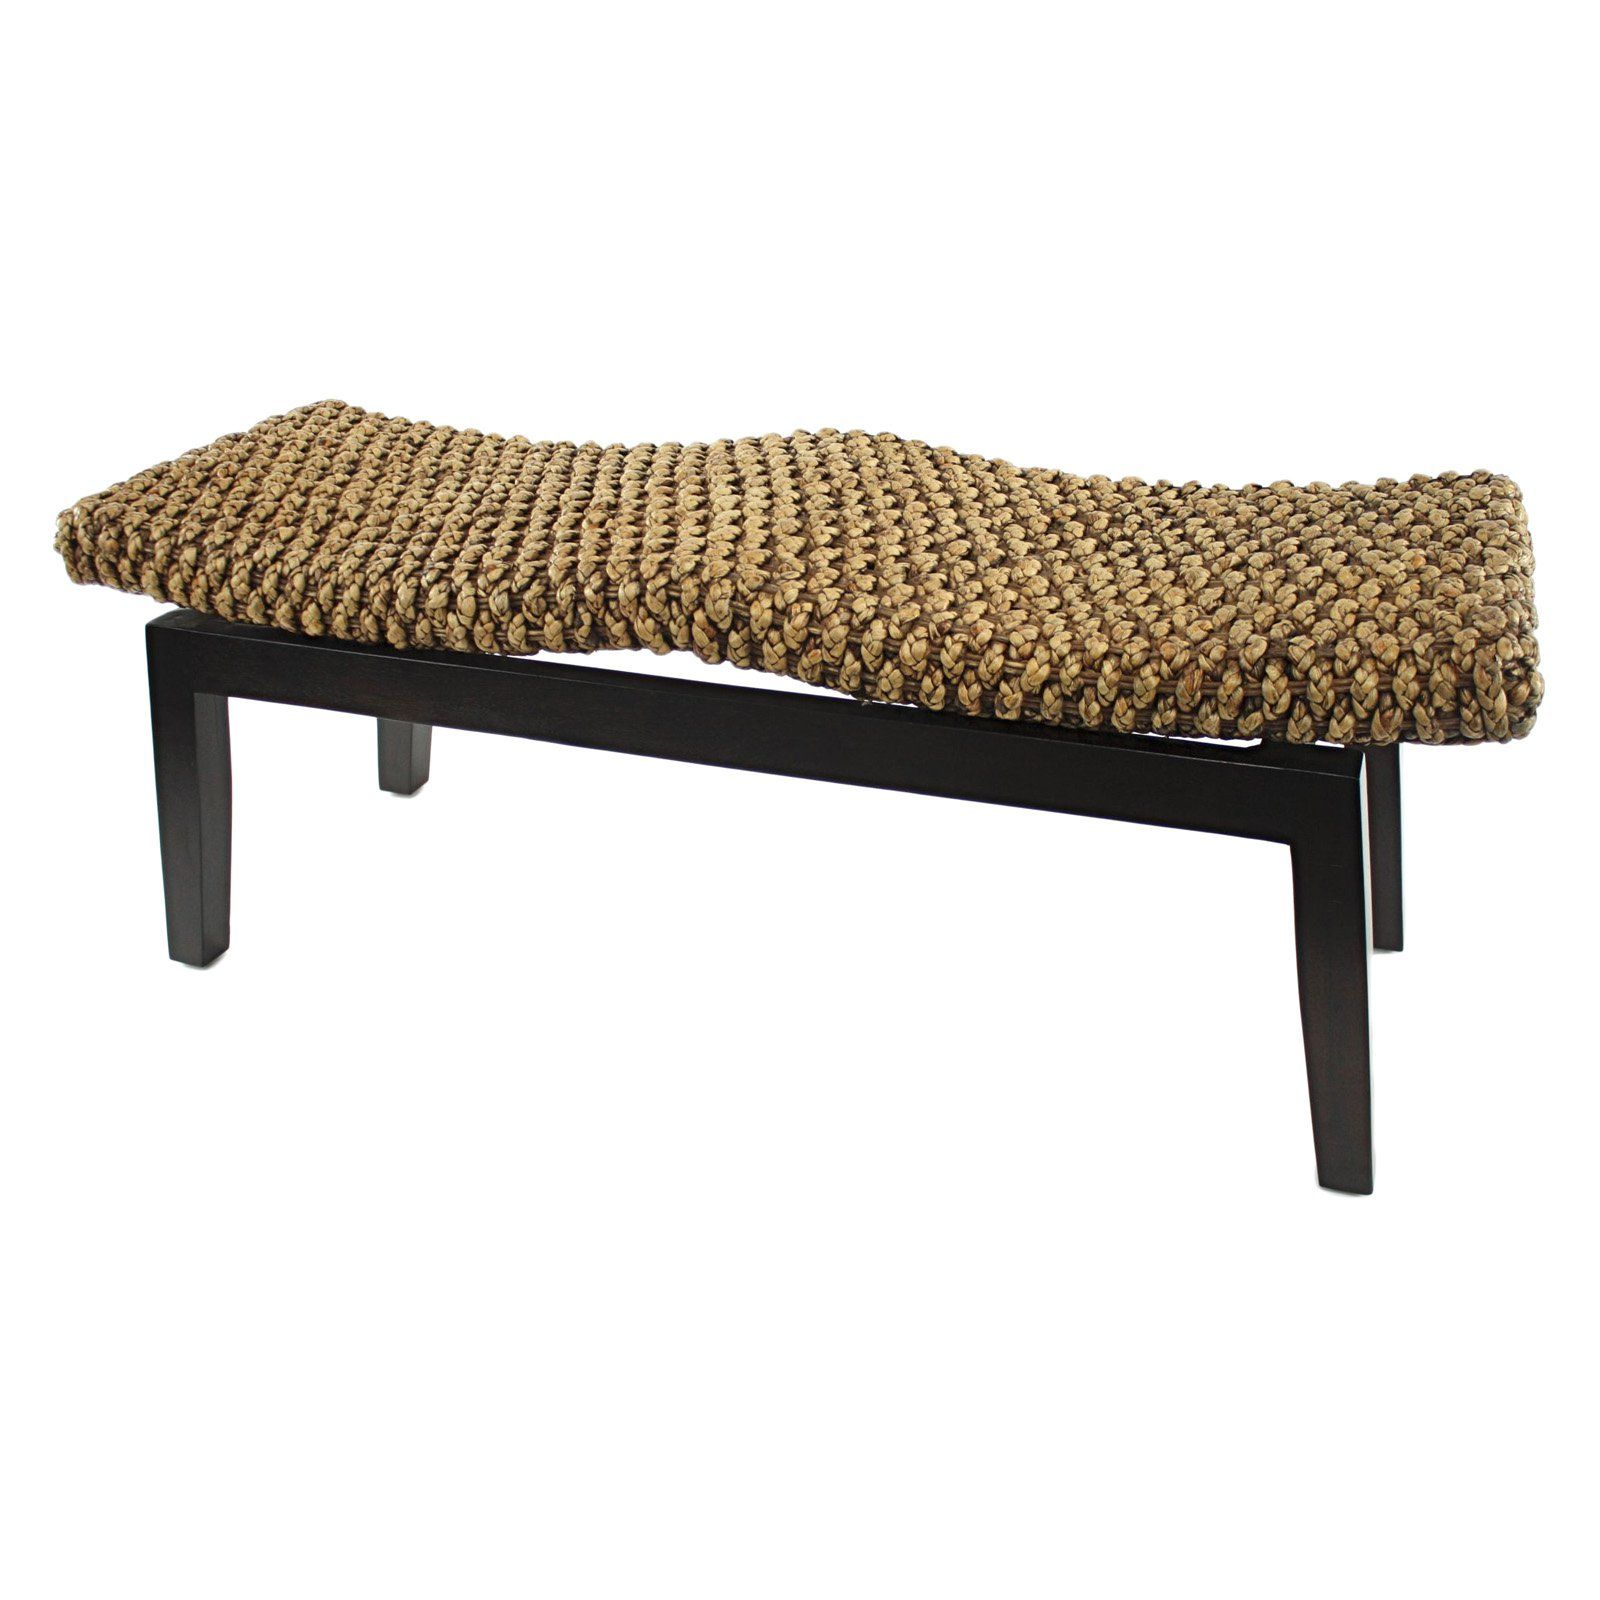 Aspire Home Accents Parker Indoor Rattan Bench 228 7 Hayneedle